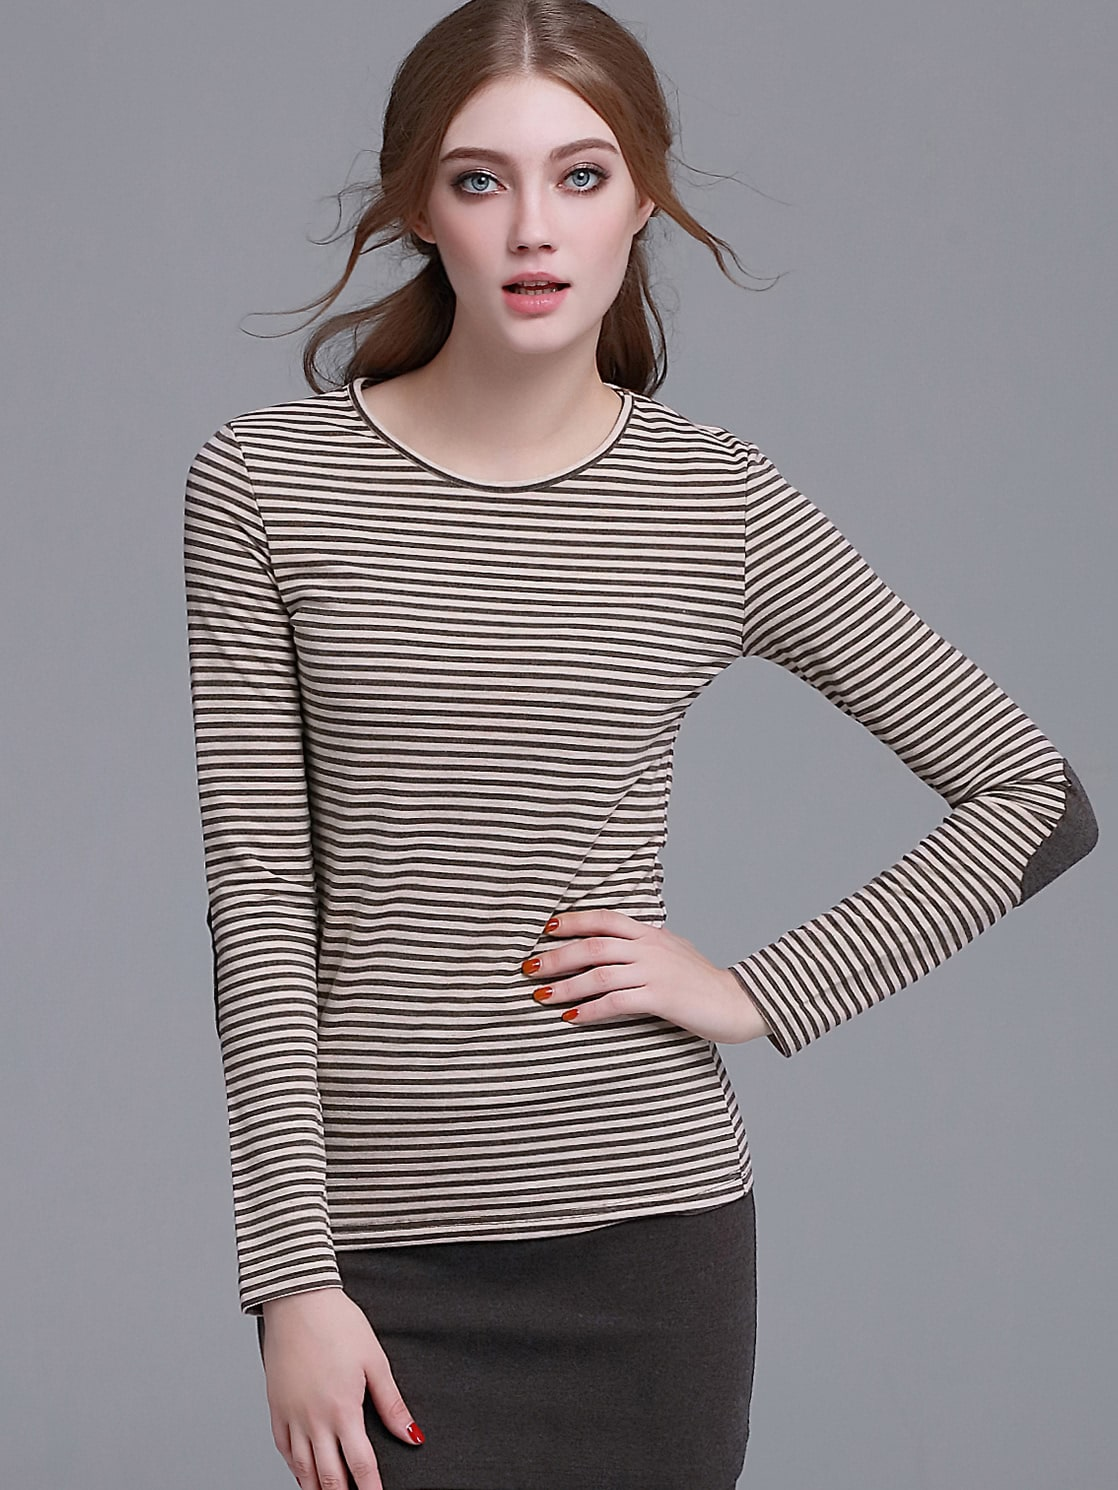 Brown Striped Elbow Patch Long Sleeve T-shirtBrown Striped Elbow Patch Long Sleeve T-shirt<br><br>color: Brown<br>size: L